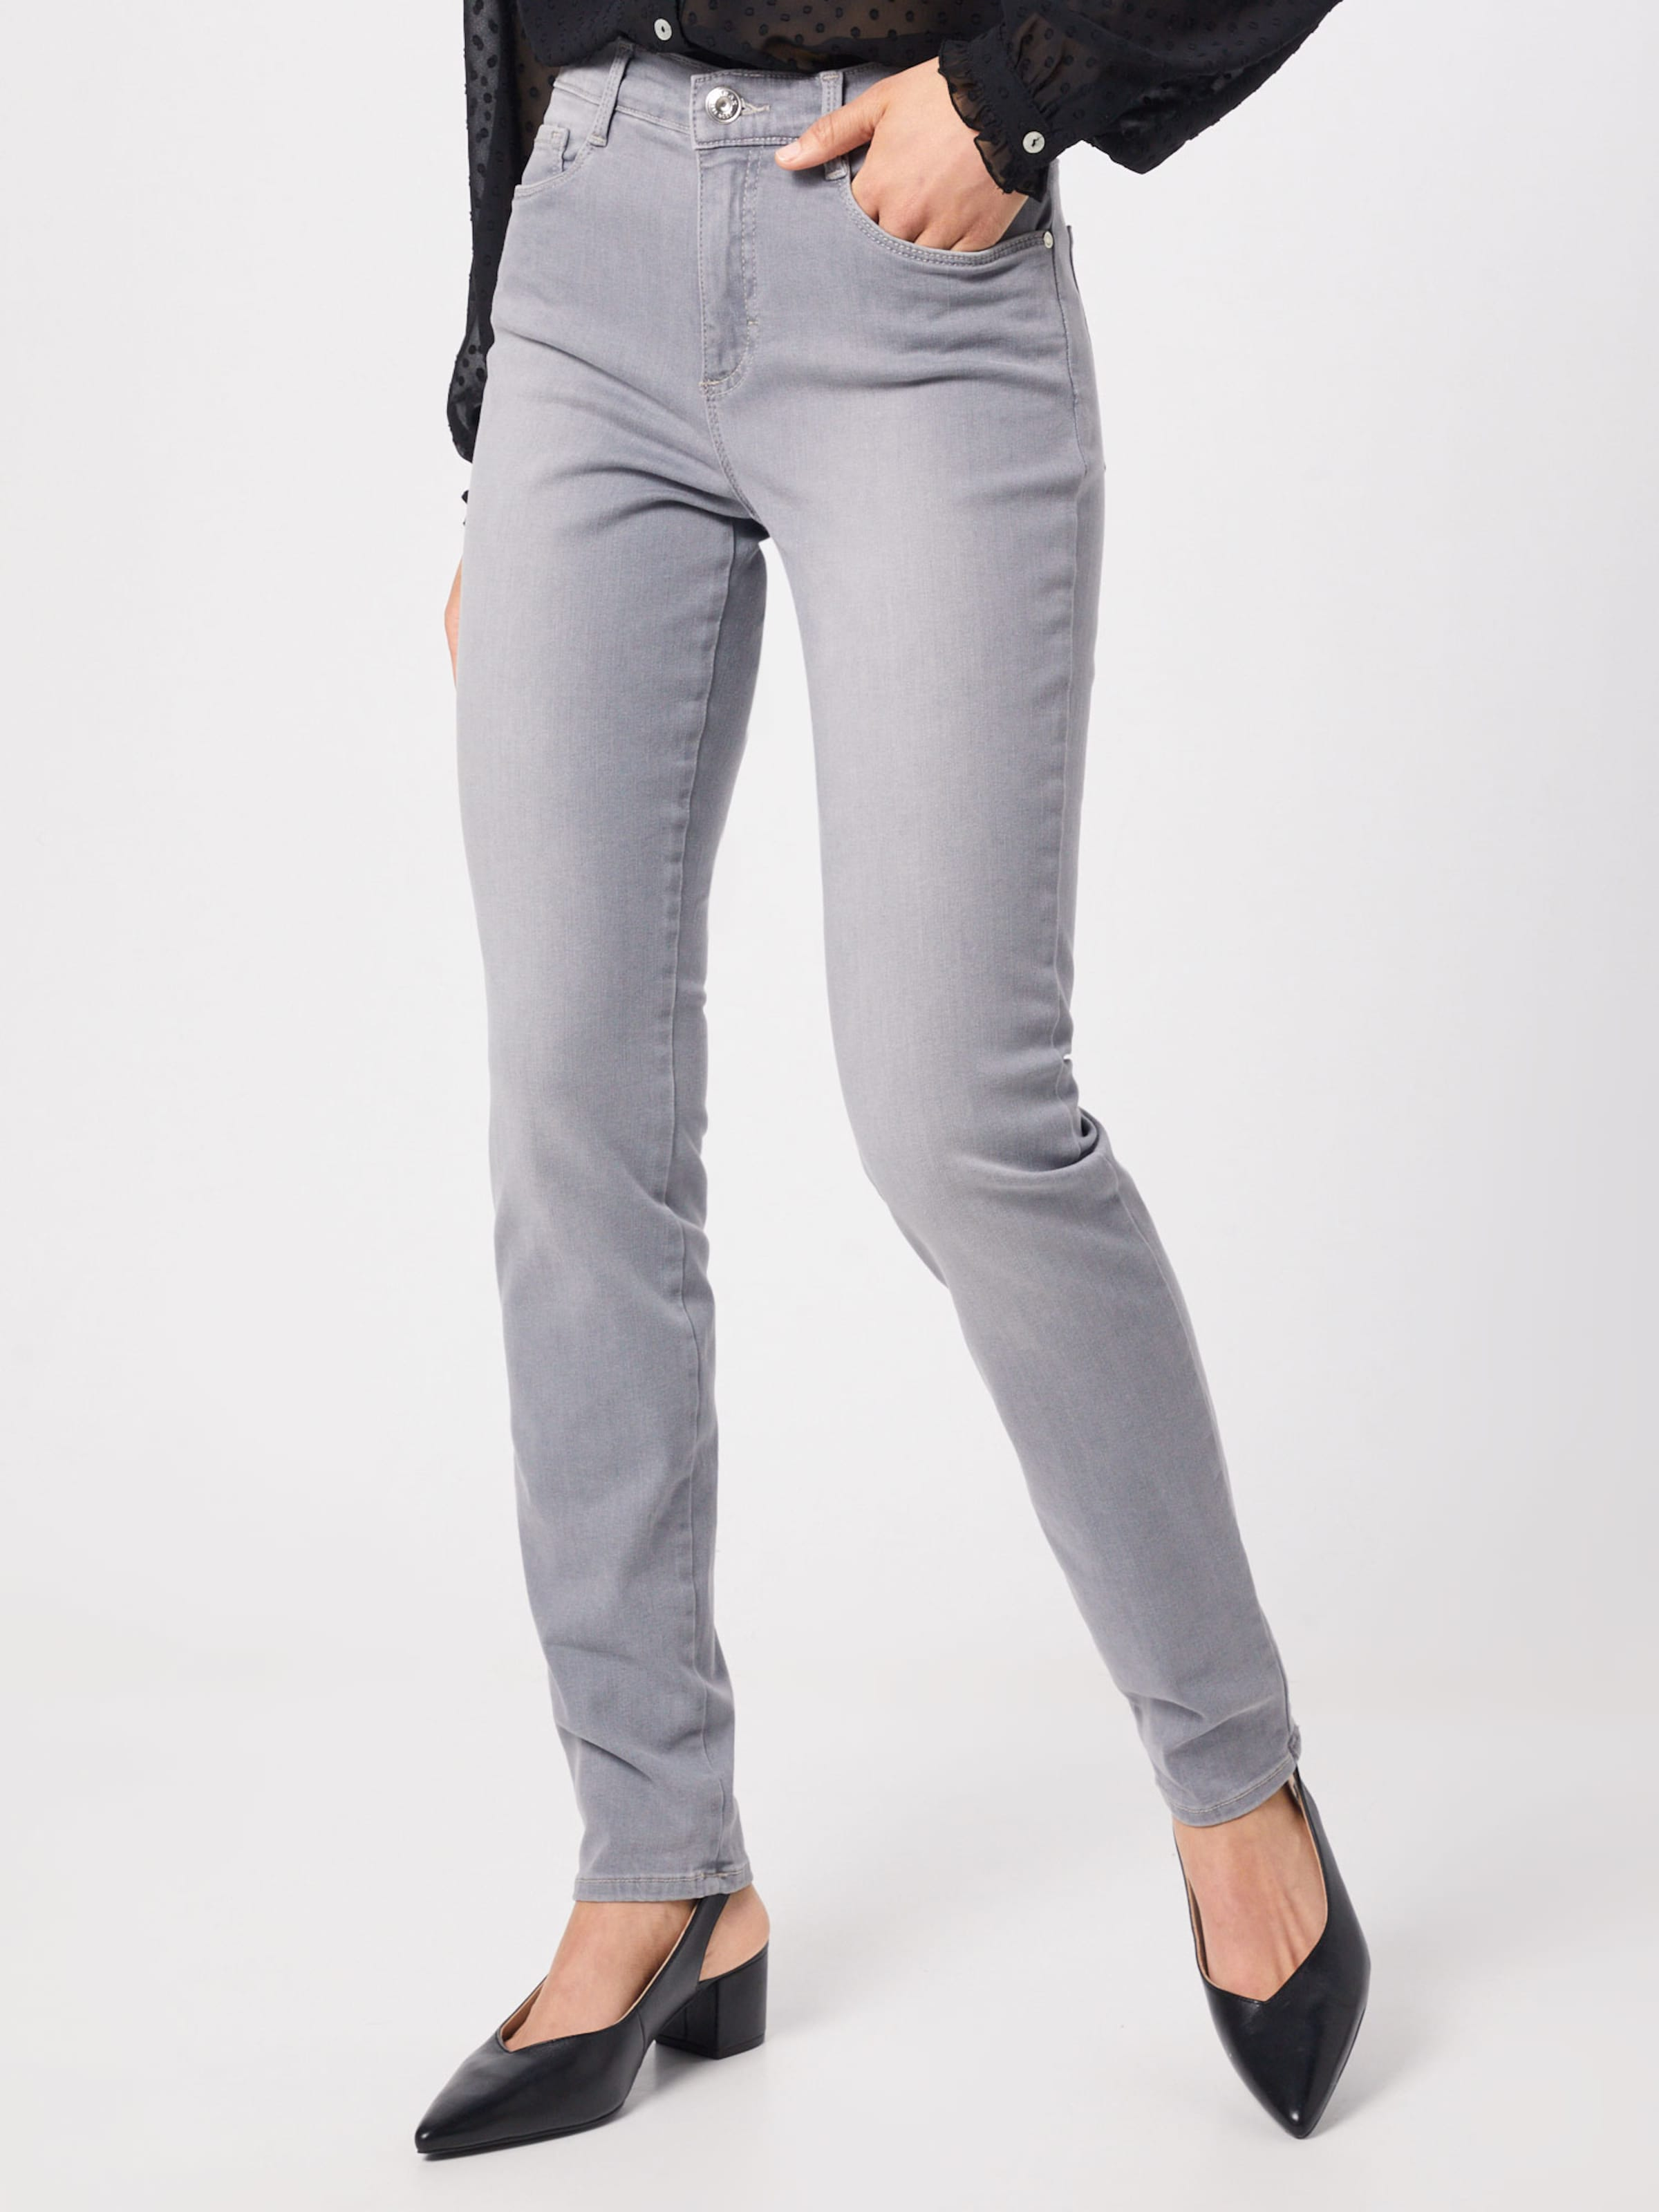 e114b59fa06b31  shakira  Grey In Denim Brax Jeans SVpUzM.